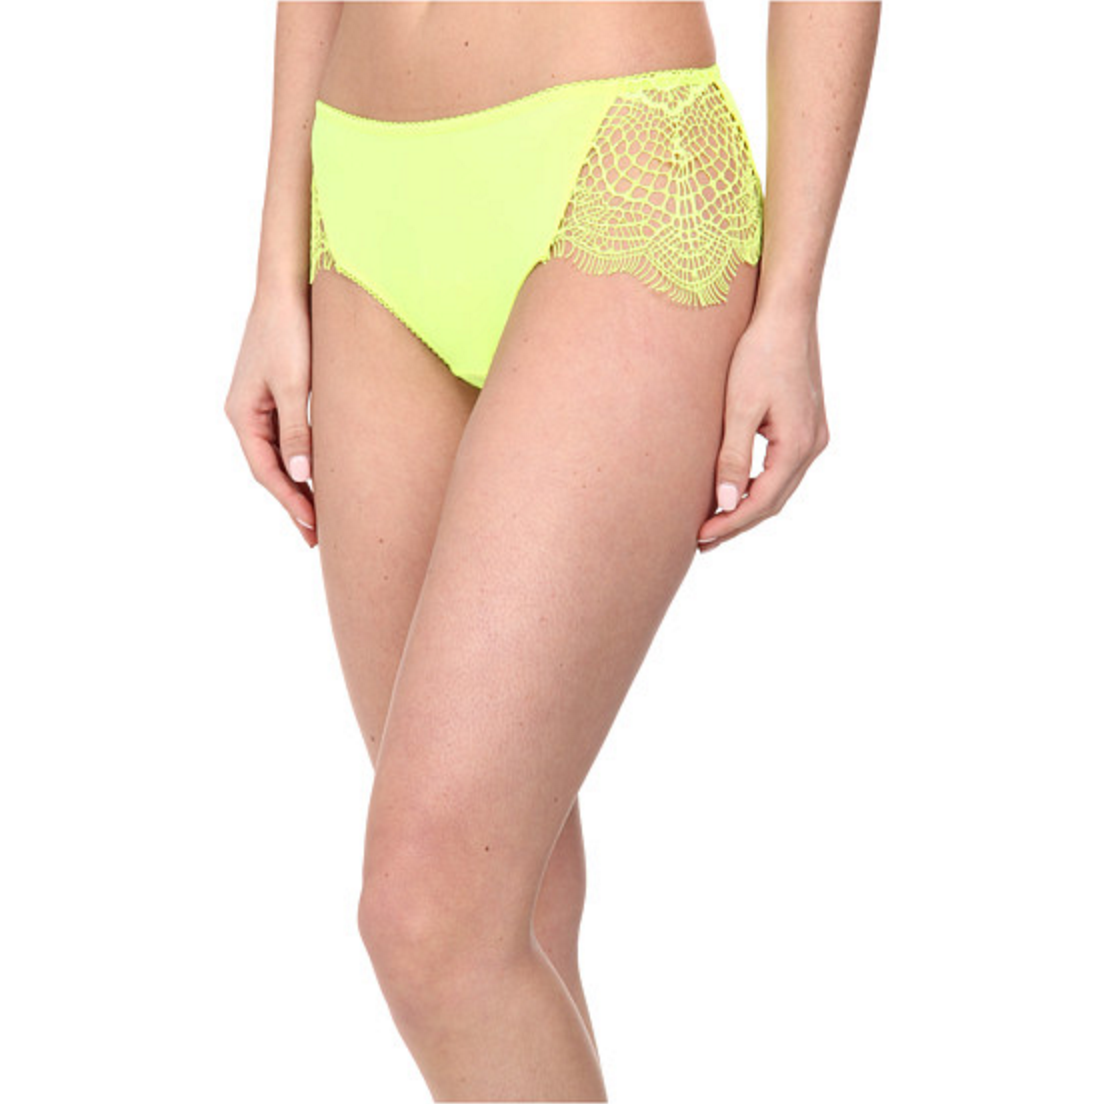 For Love & Lemons Bat Your Lashes Cheeky Panty